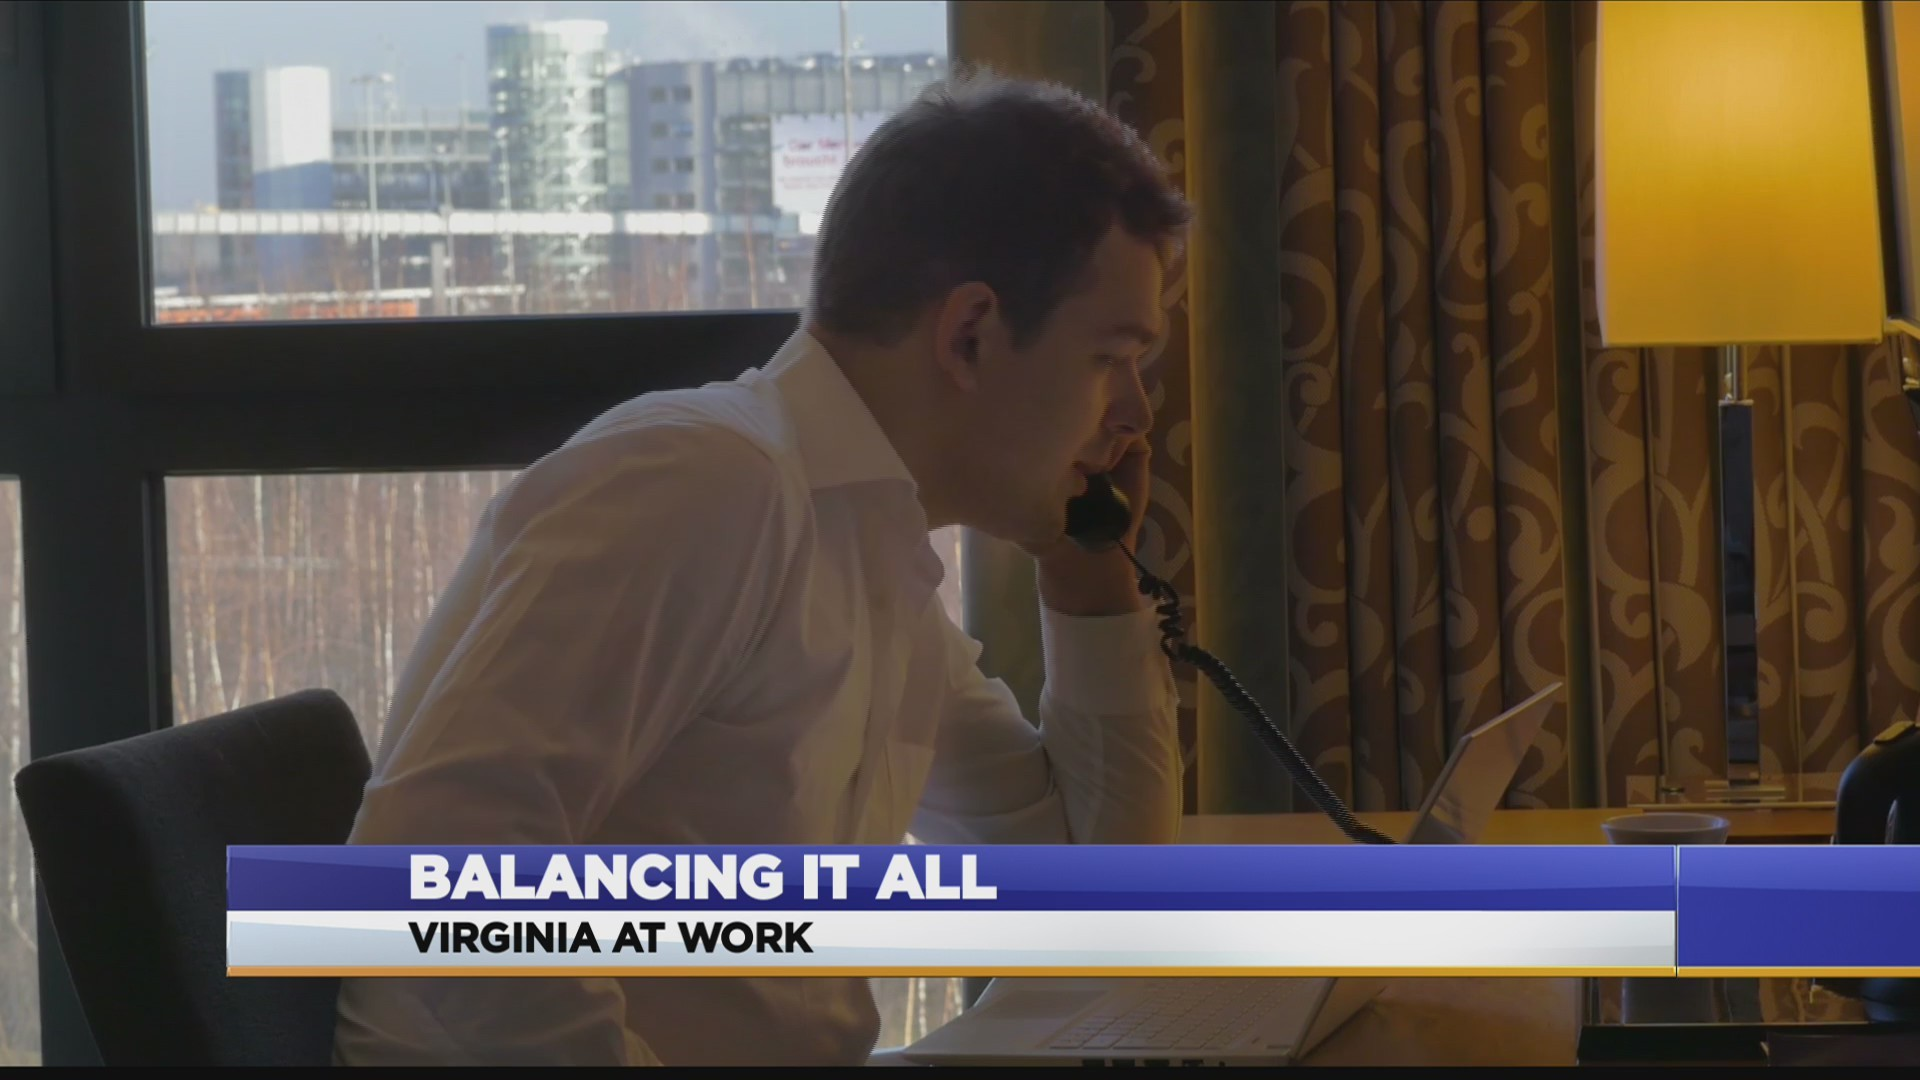 Virginia At Work: How to balance work and home life